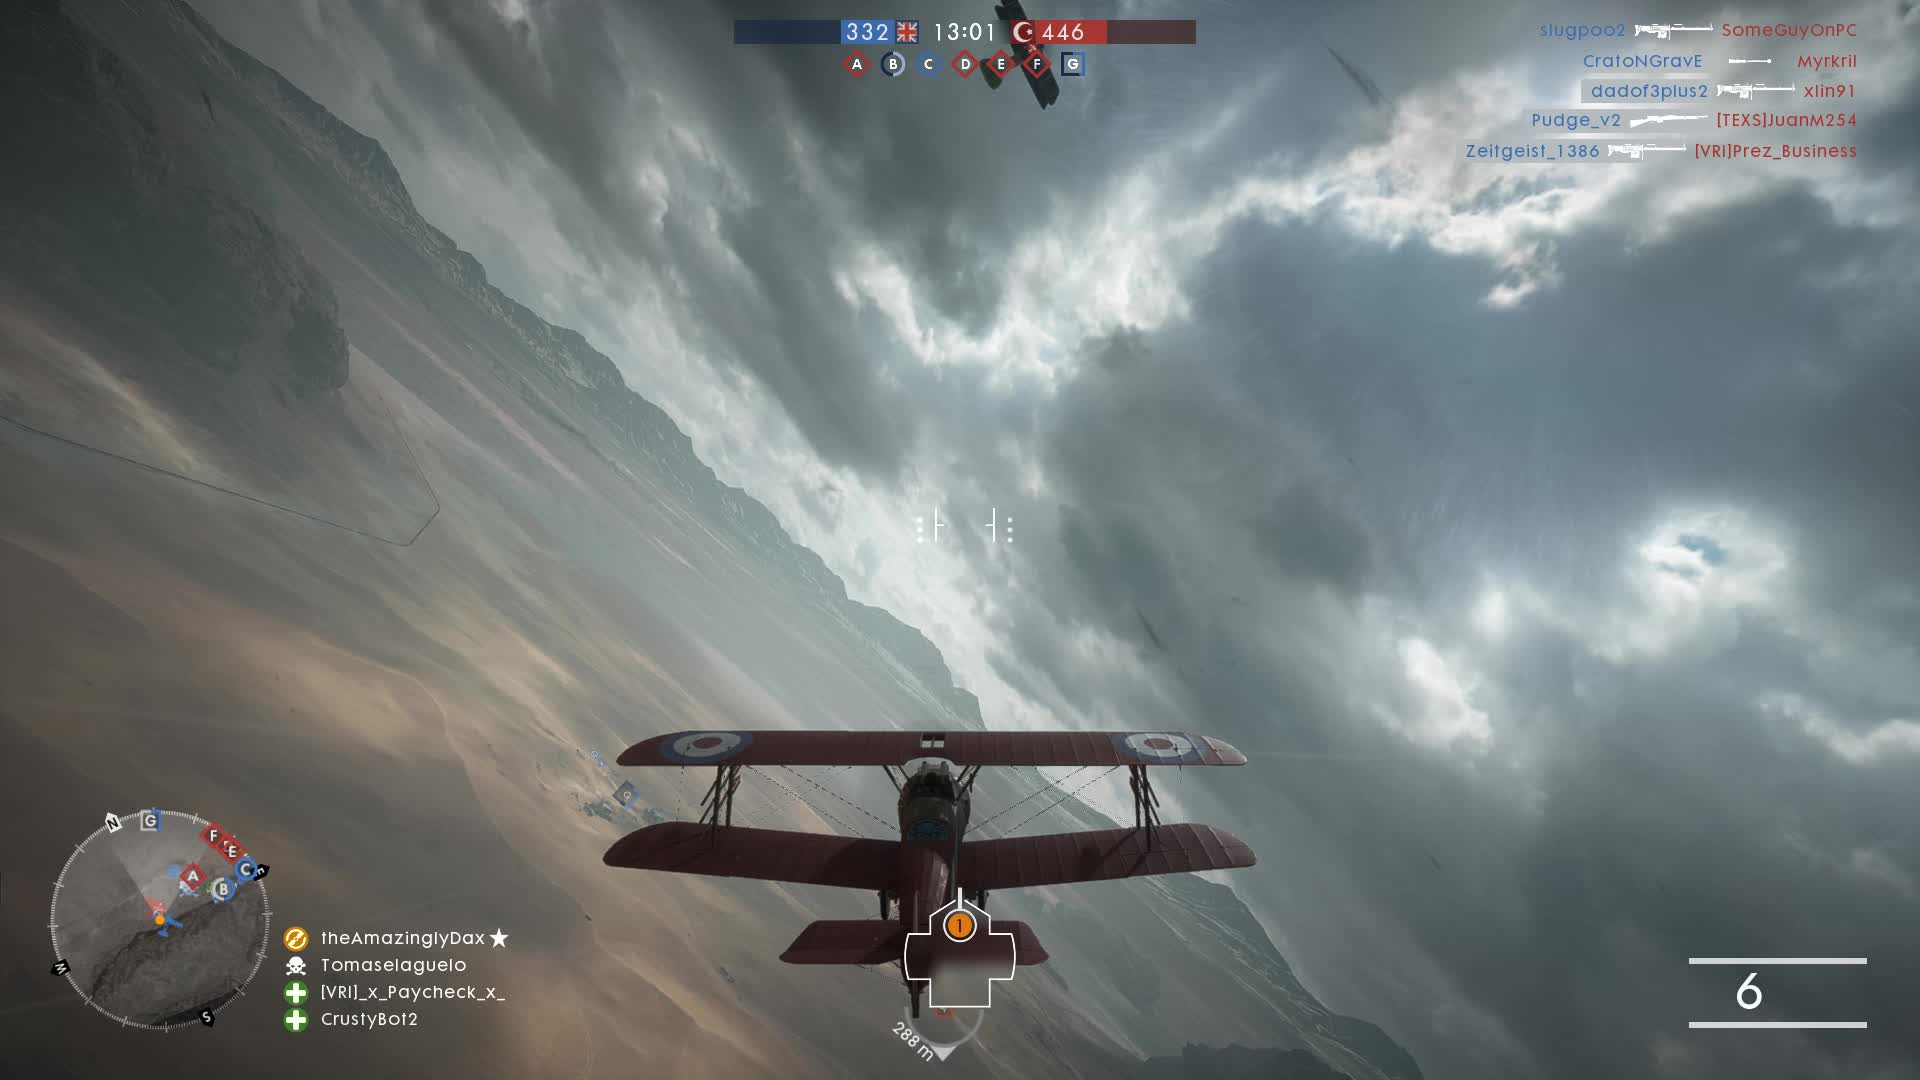 battlefield1, Almost in my sights, nvm GIFs